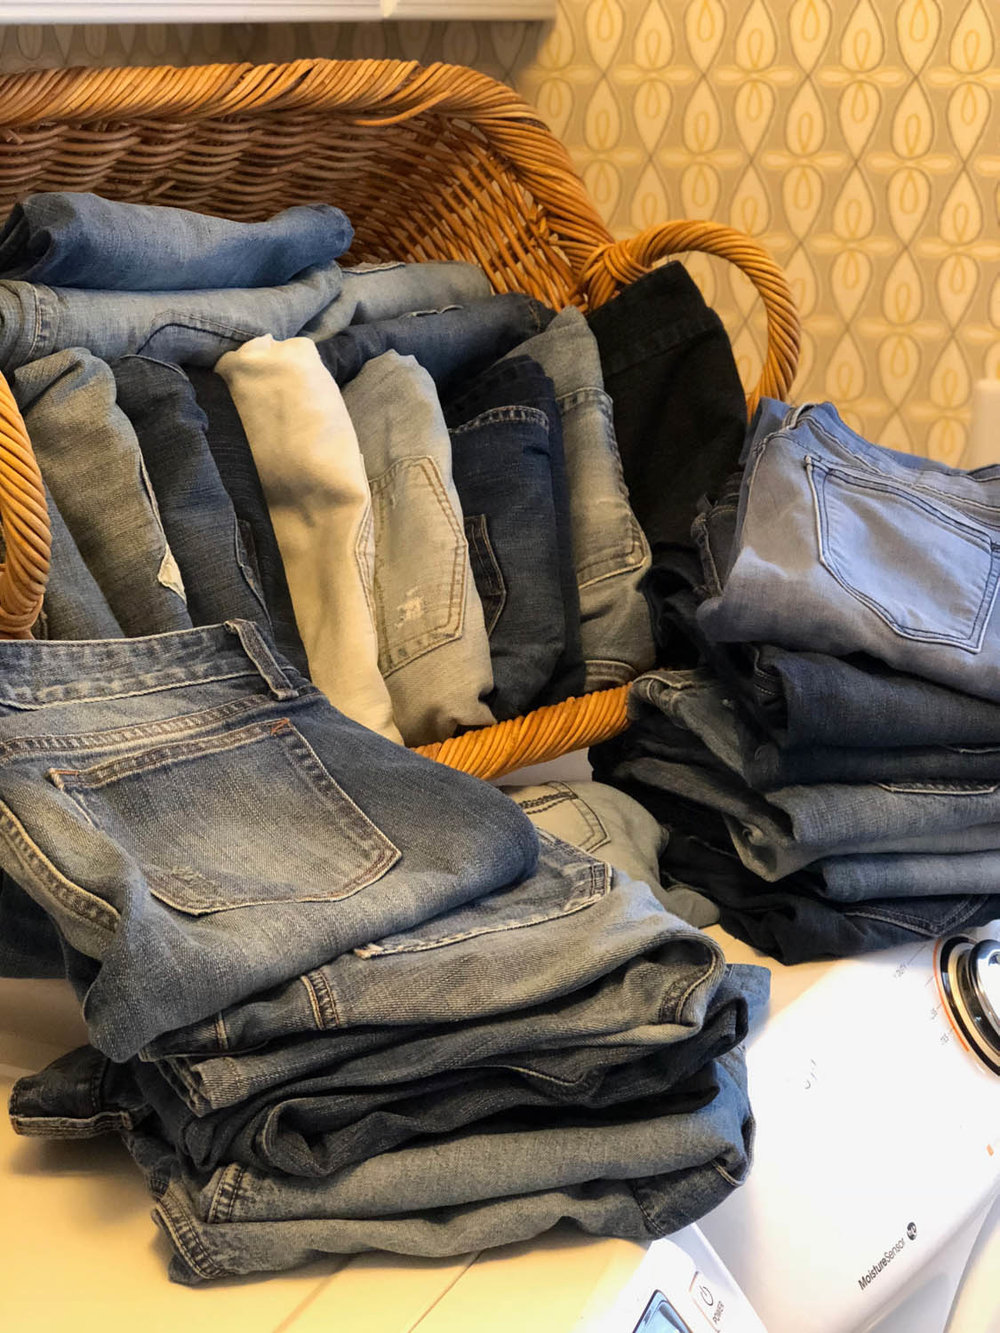 folded denim blue jeans in laundry basket